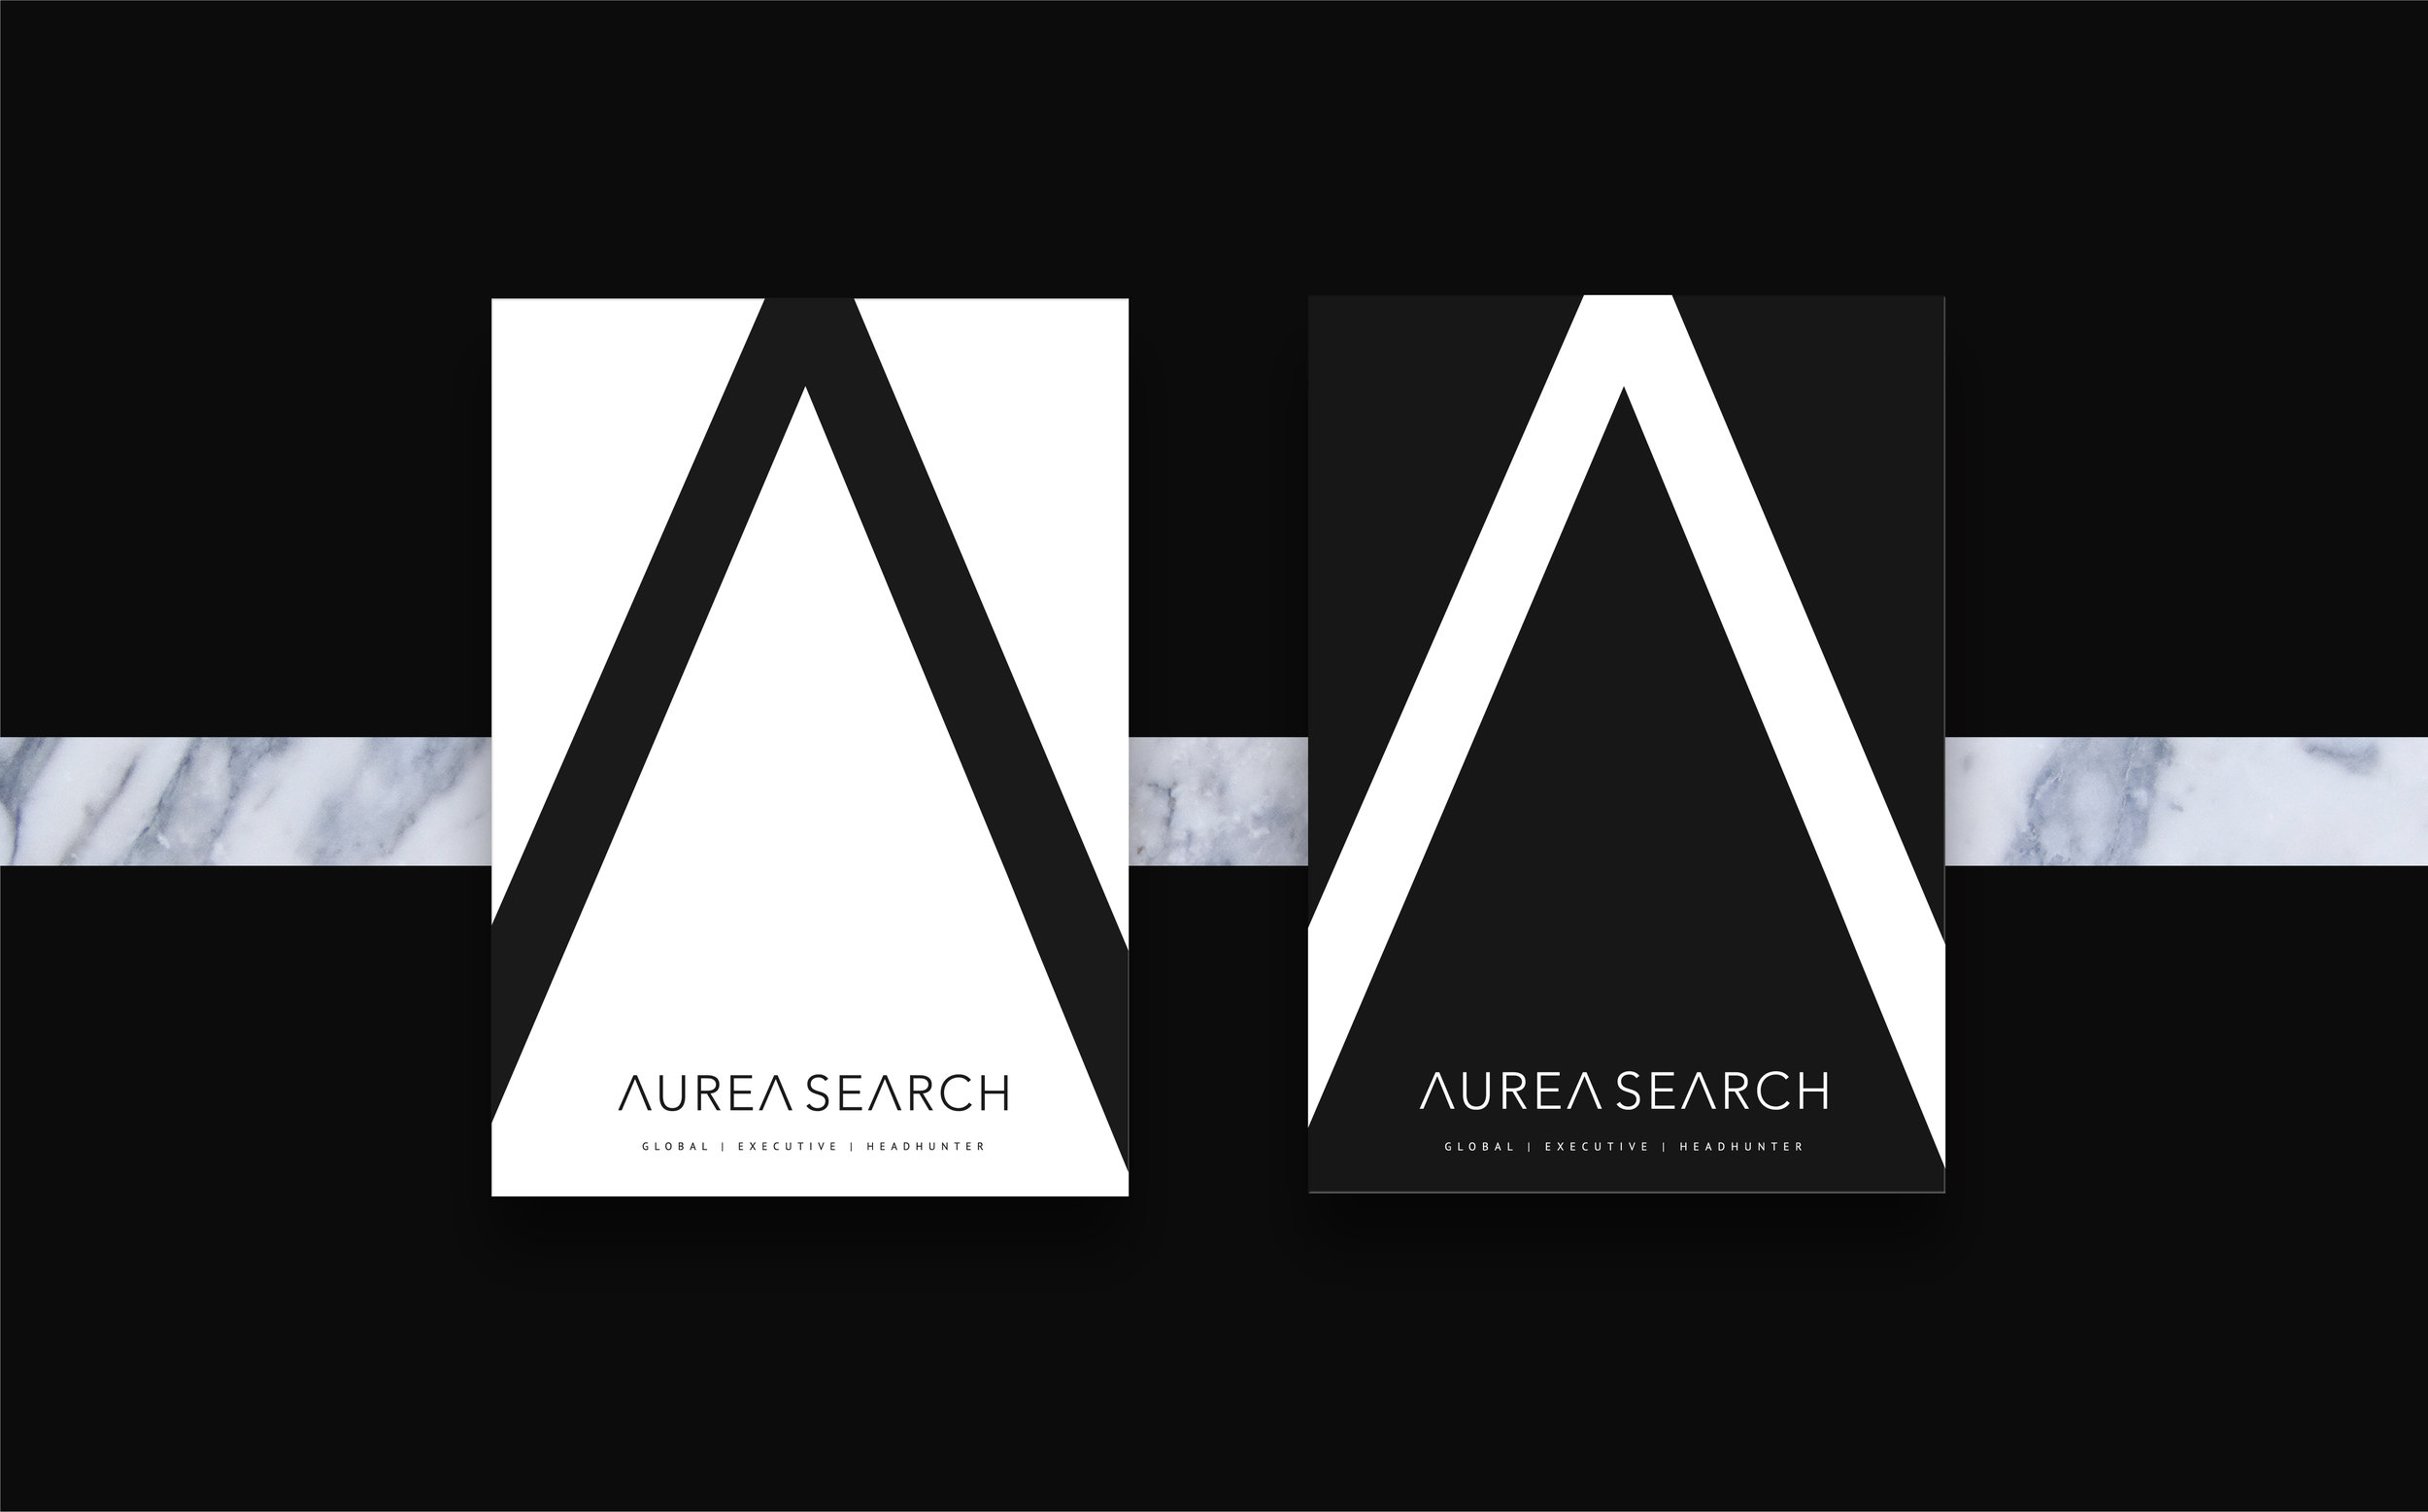 Aurea Search-04.jpg